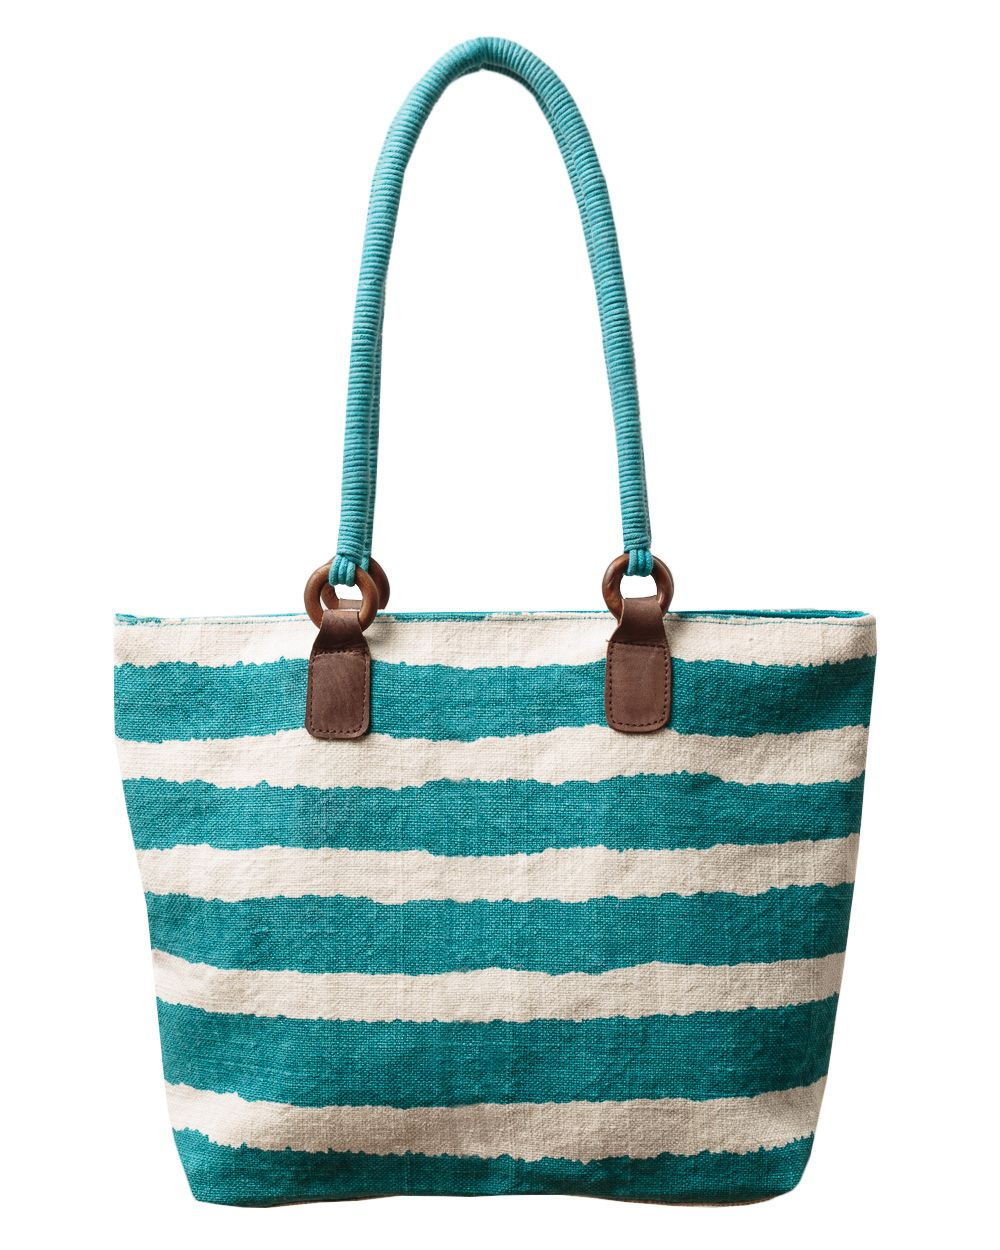 Stripe print jute bag